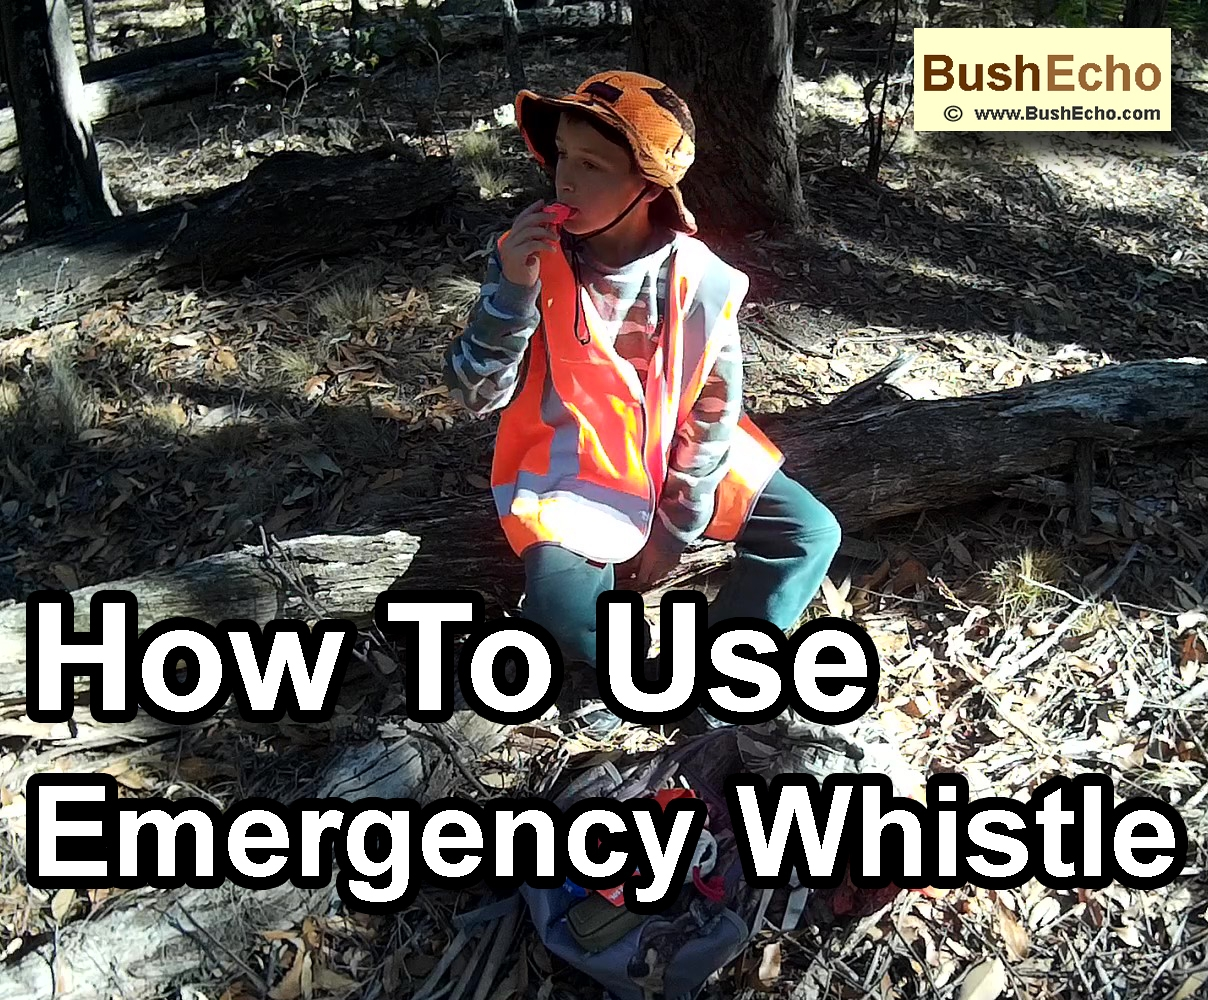 How to use emergency whistle